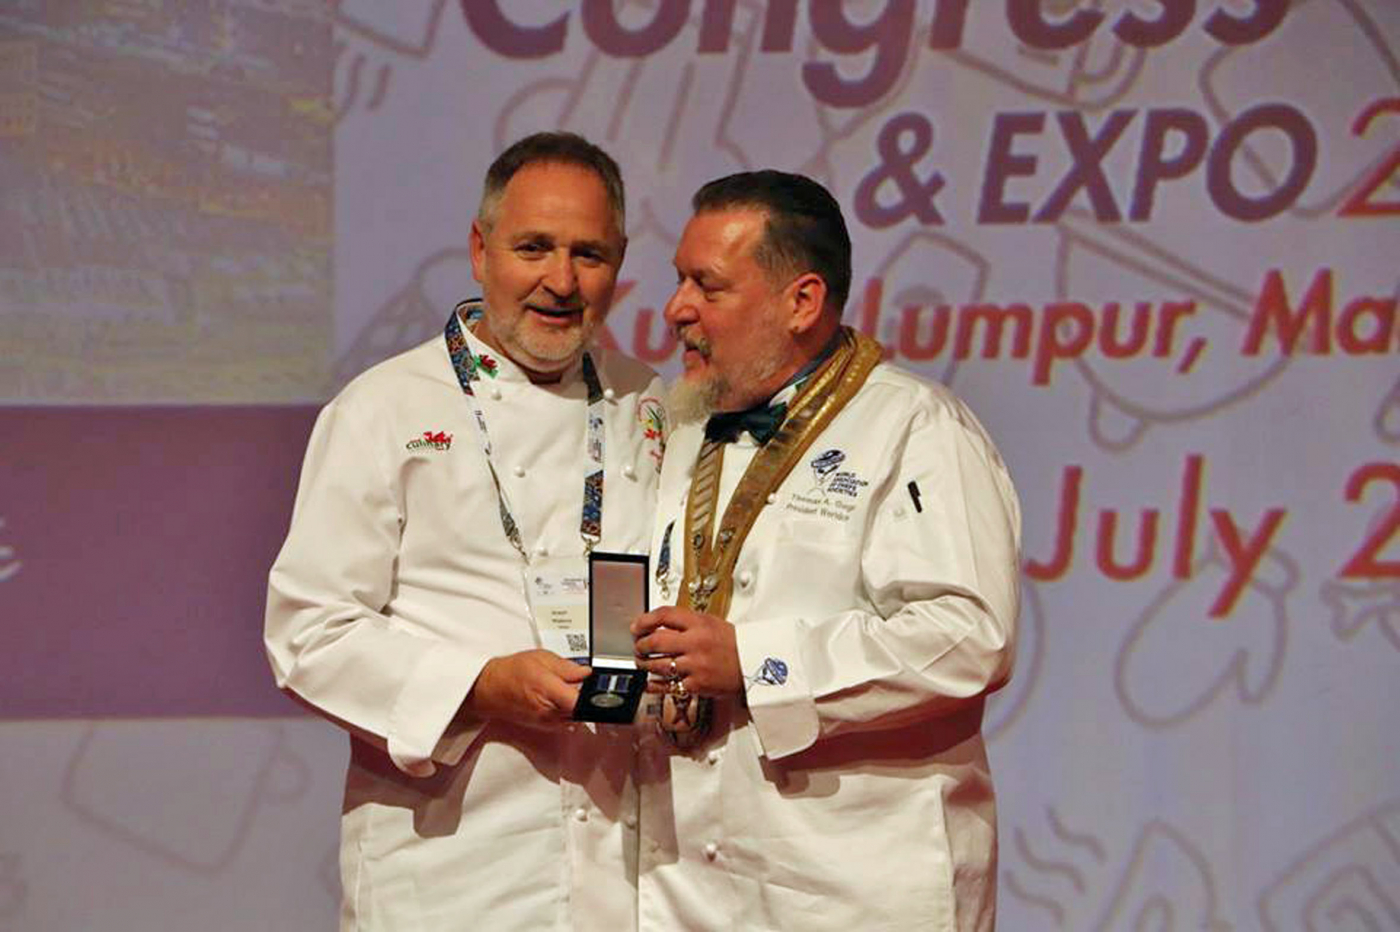 Wales invited to host prestigious event for world's top chefs next year